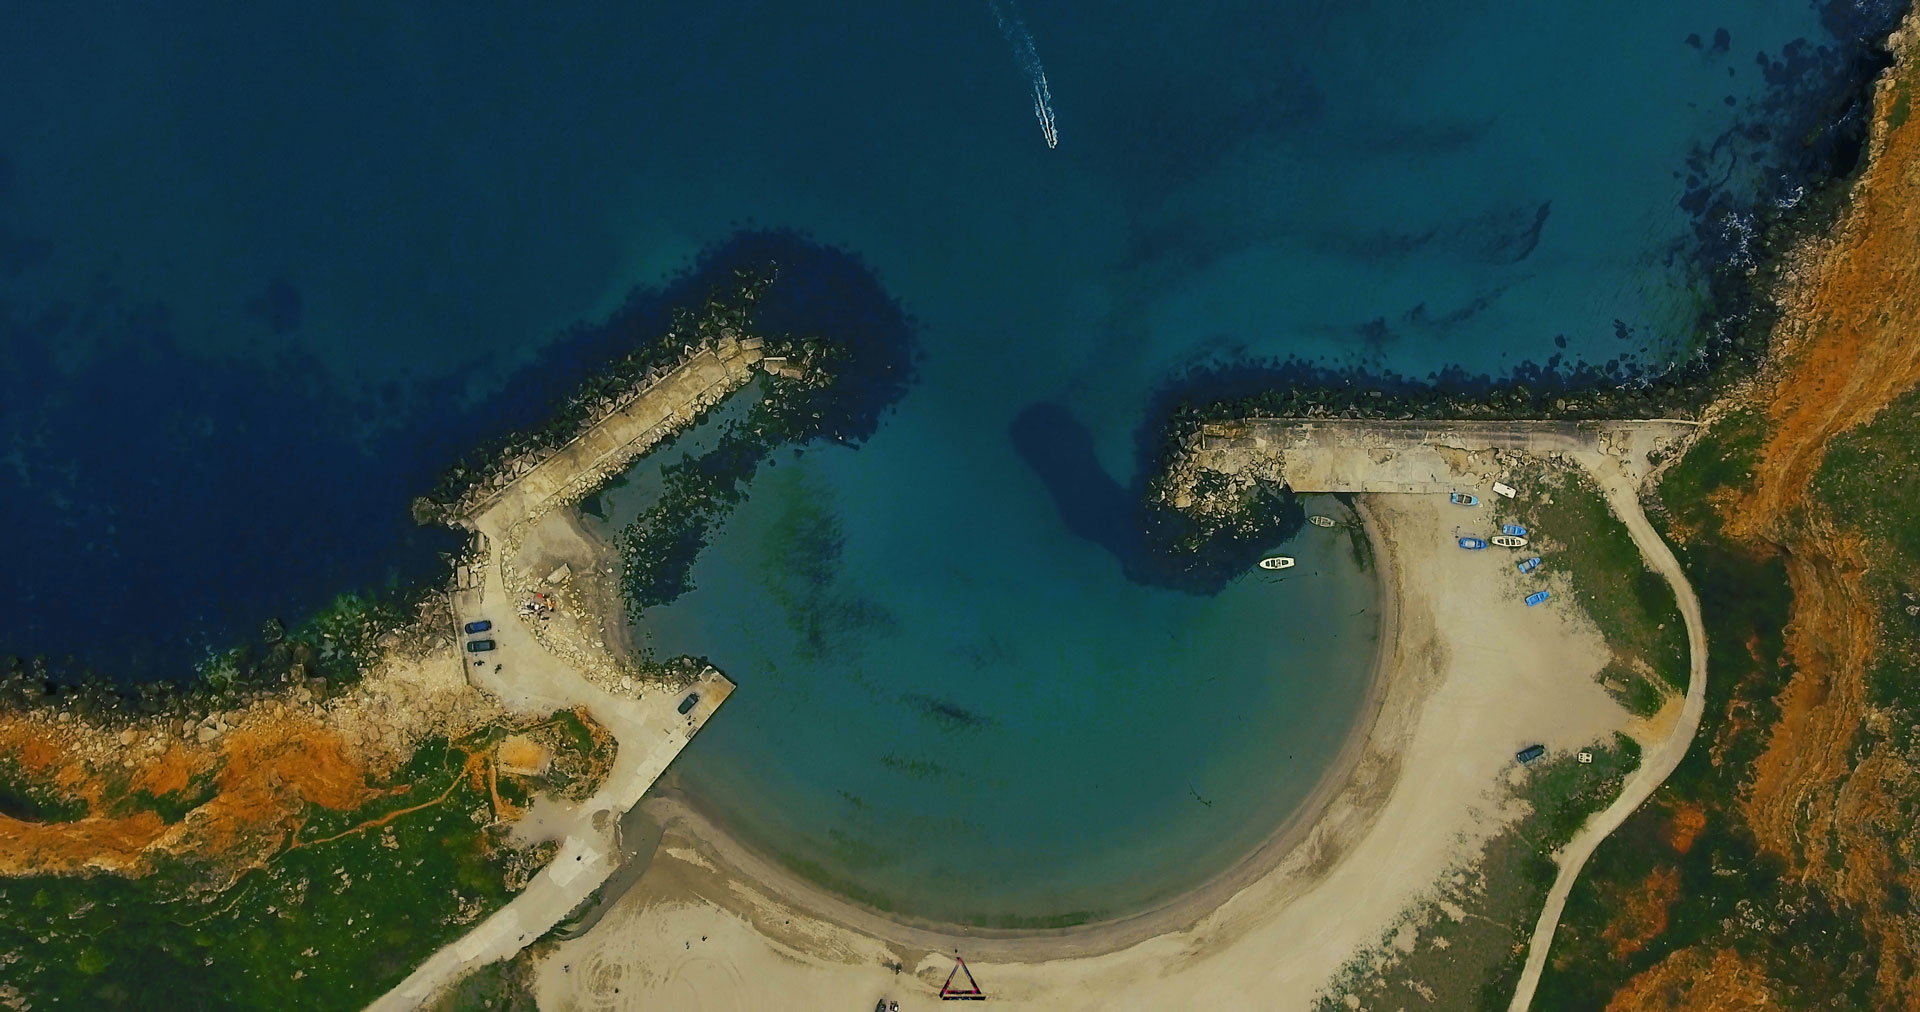 Luba6ky-Drone-Photography-picture-7